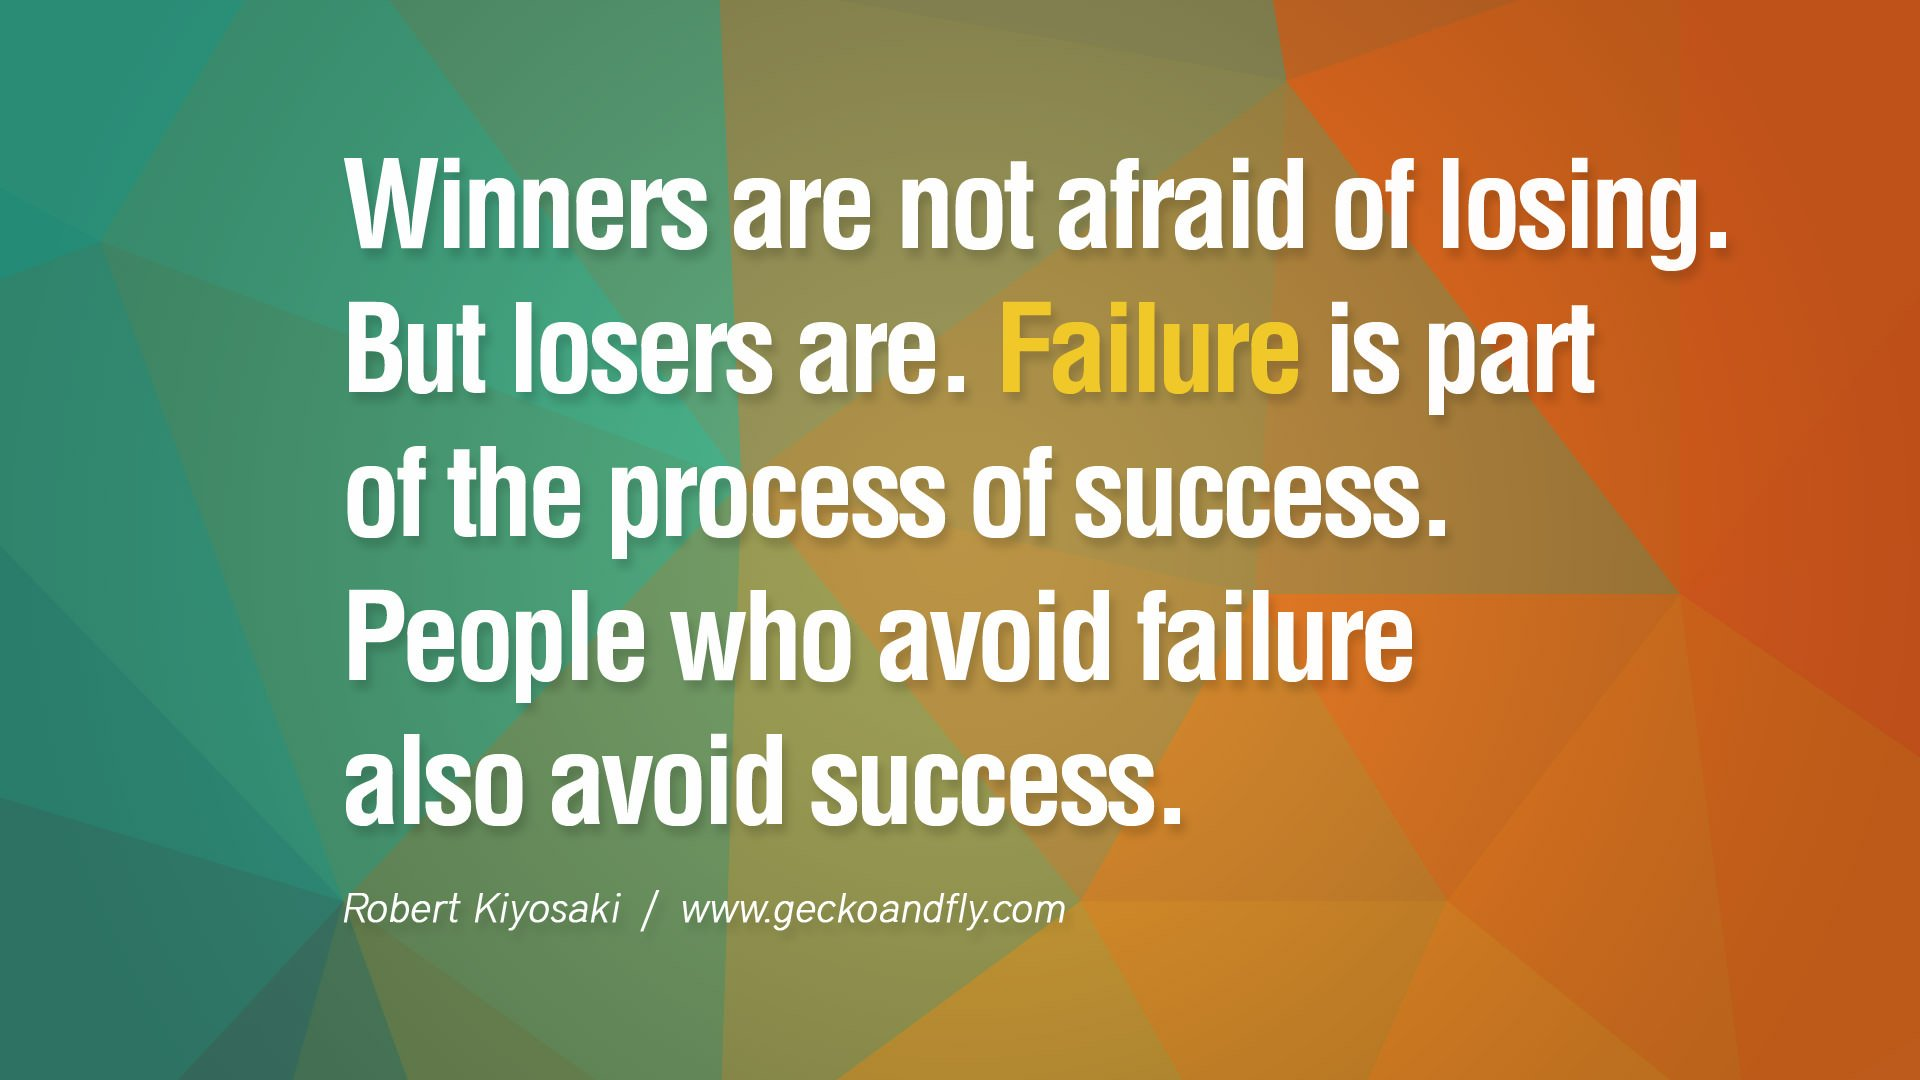 Loser People Quotes Quotesgram: Winners And Losers Quotes. QuotesGram